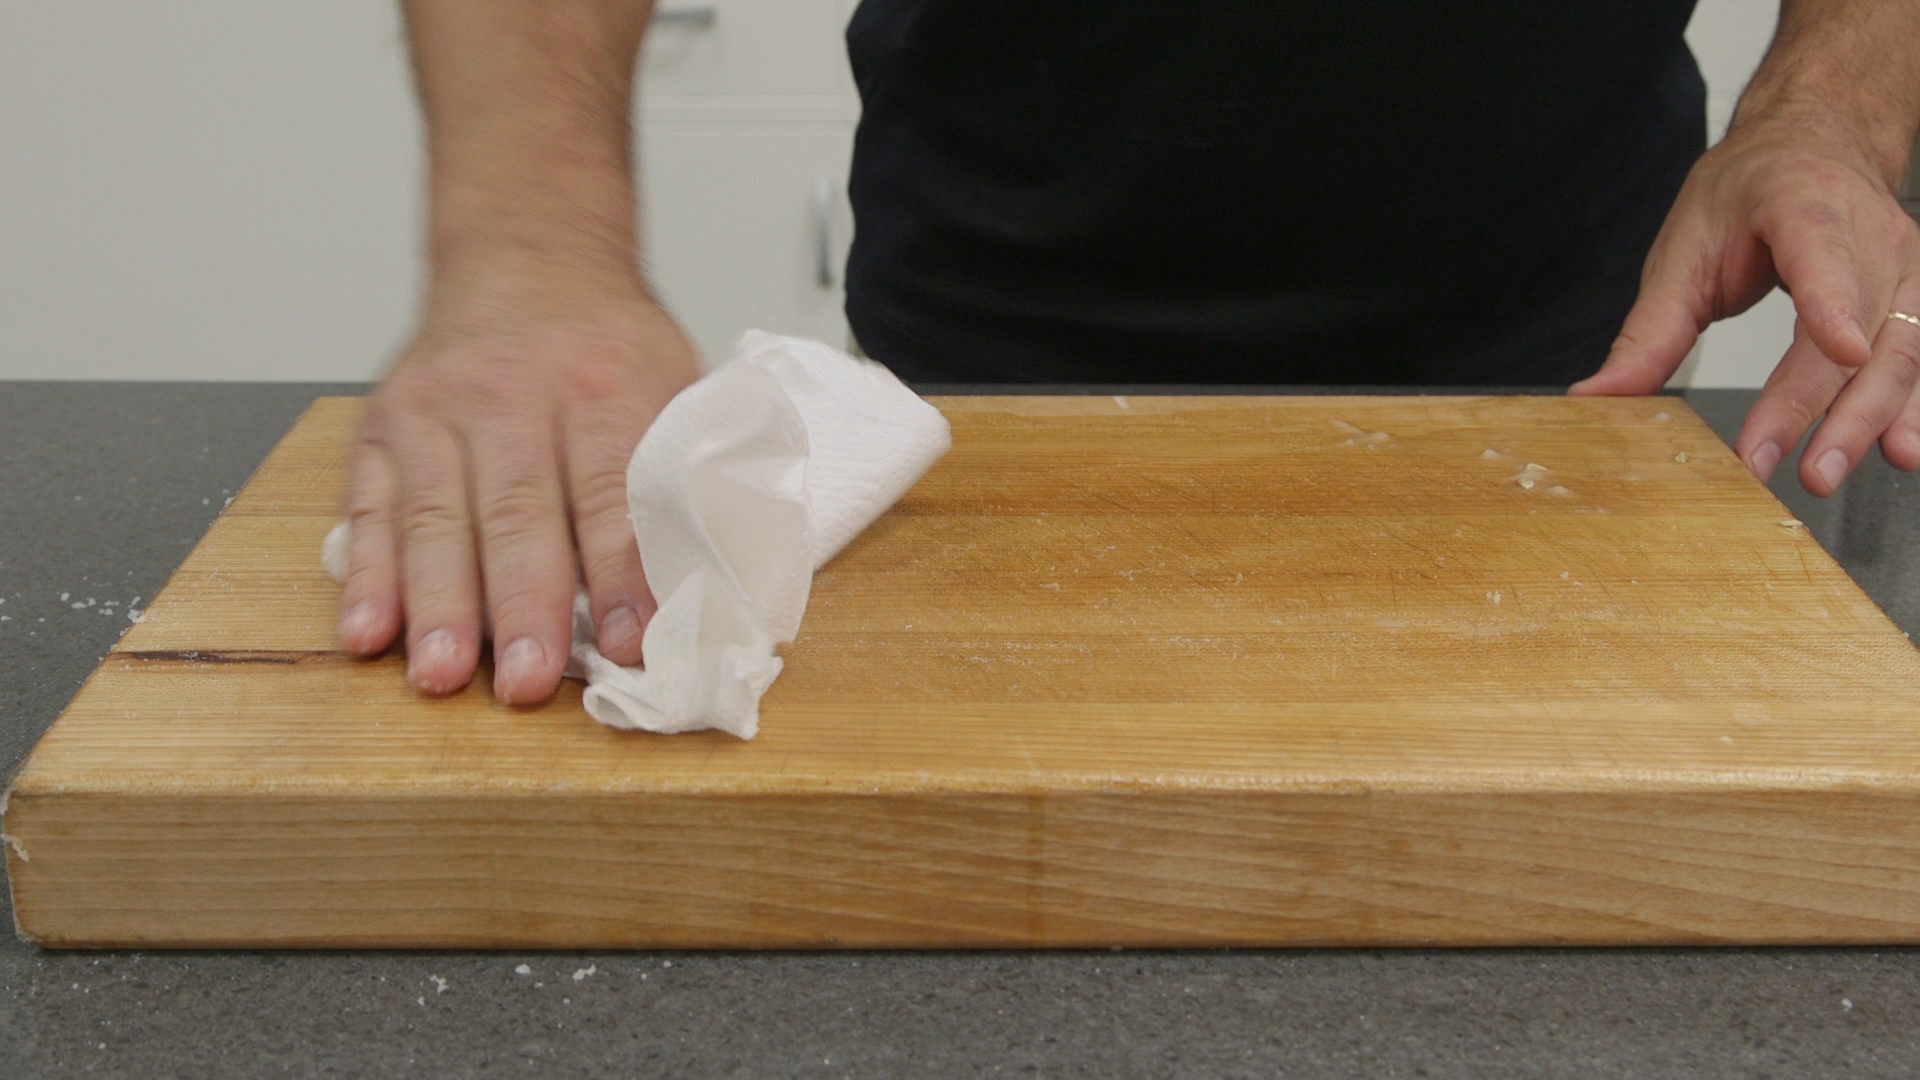 Ratings On Mattresses >> How to Clean a Cutting Board - Consumer Reports